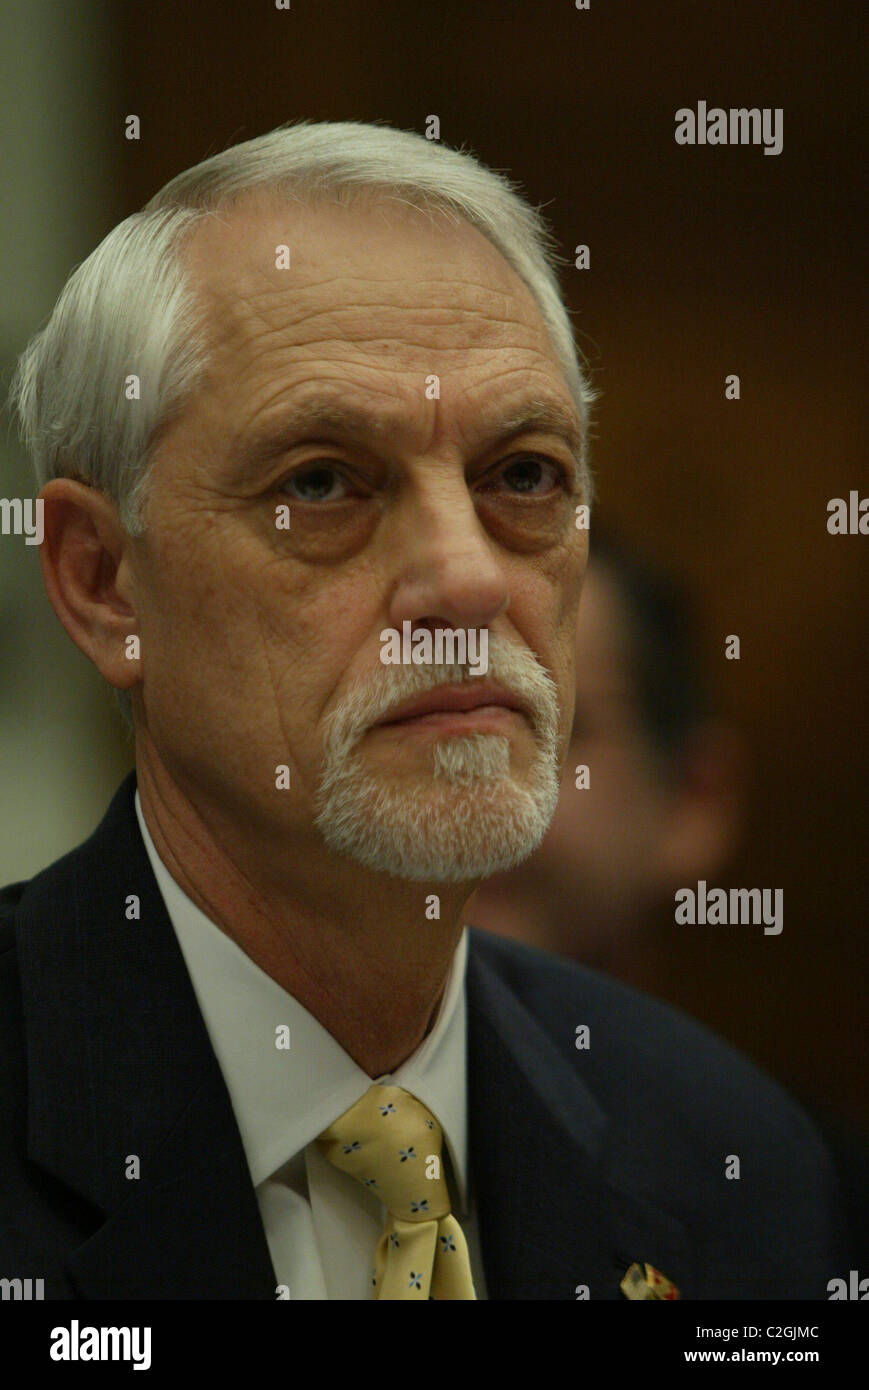 Leonard Skiles The House Financial Institutions and Consumer Credit Subcommittee held a hearing on ' Financial - Stock Image